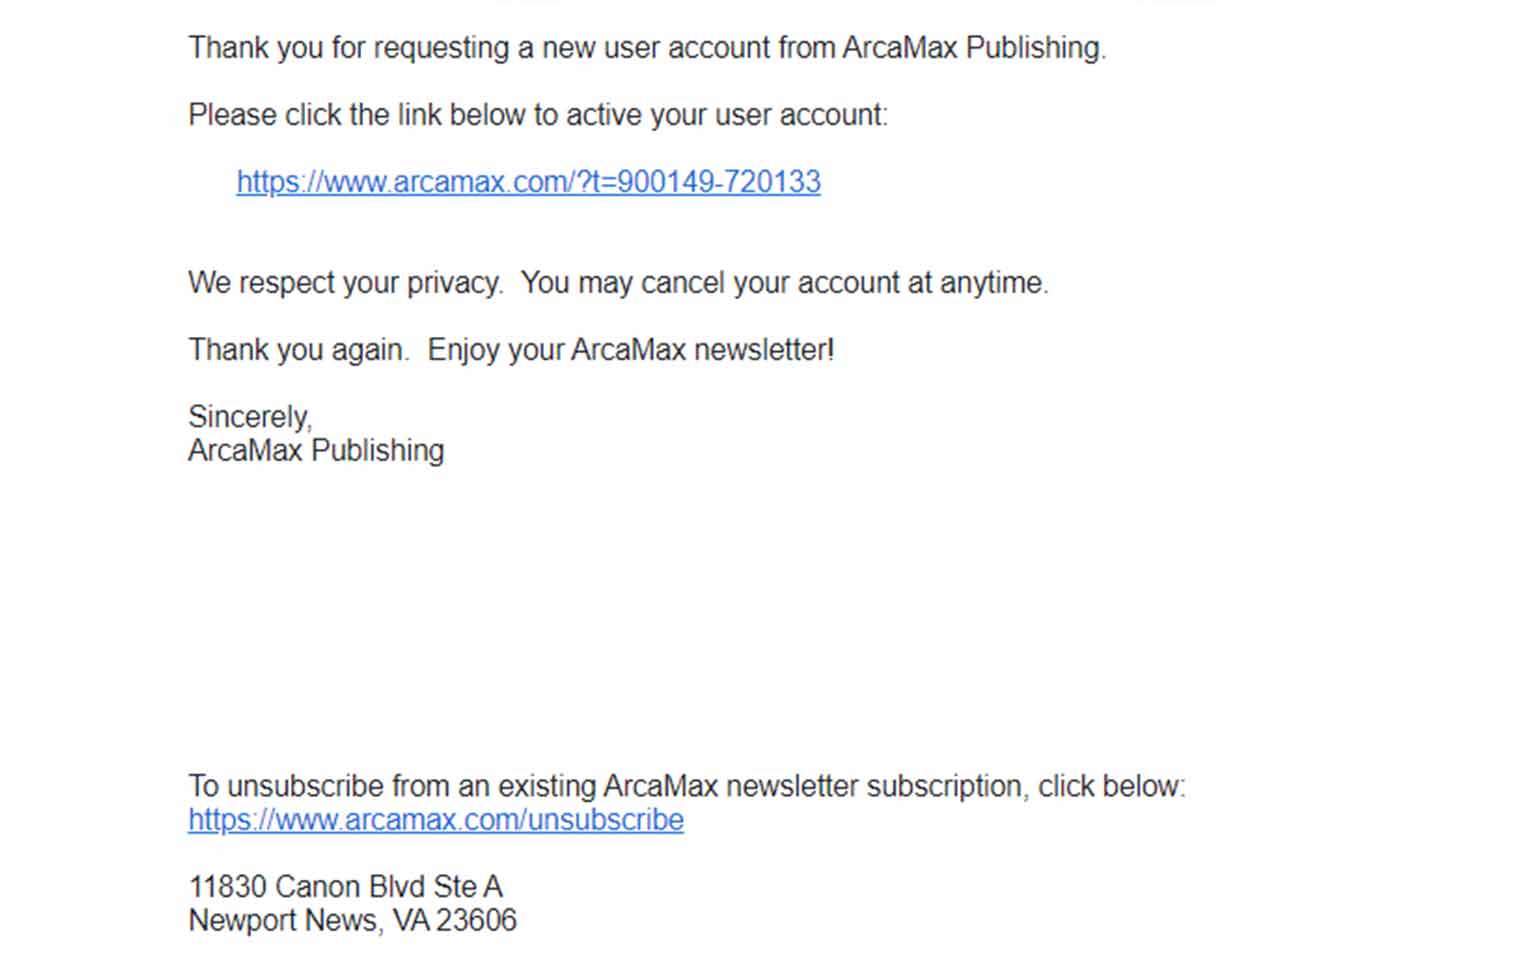 When ArcaMax Publishing started using double opt-in, the syndication service company saw improved email deliverability rates in the first week.